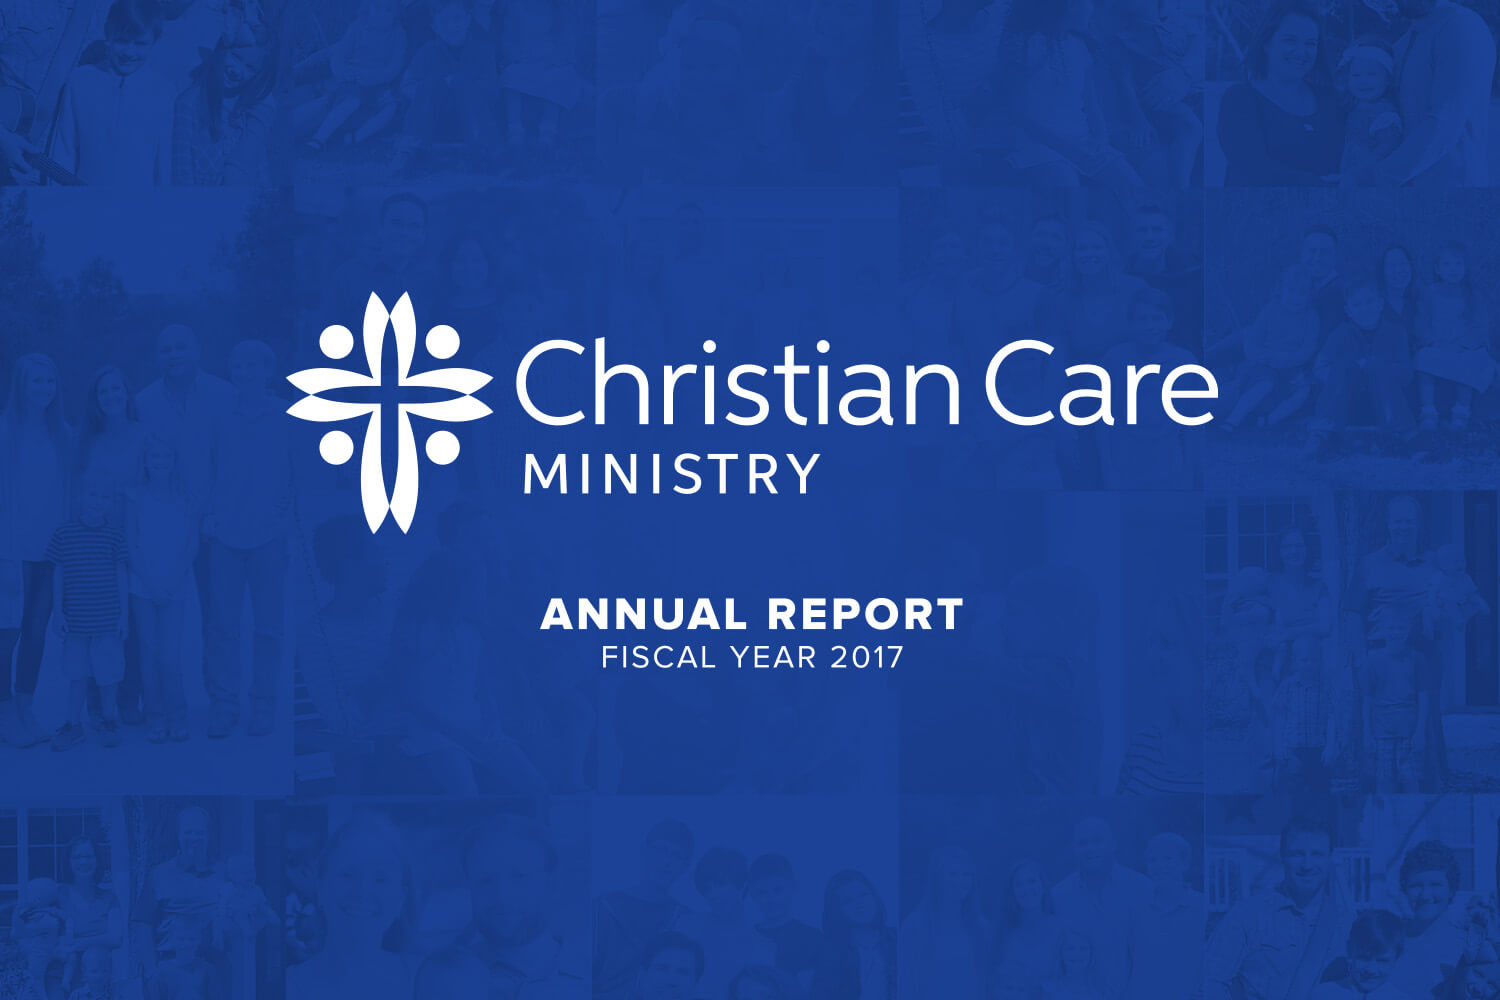 Christian Care Ministry's FY17 Annual Report